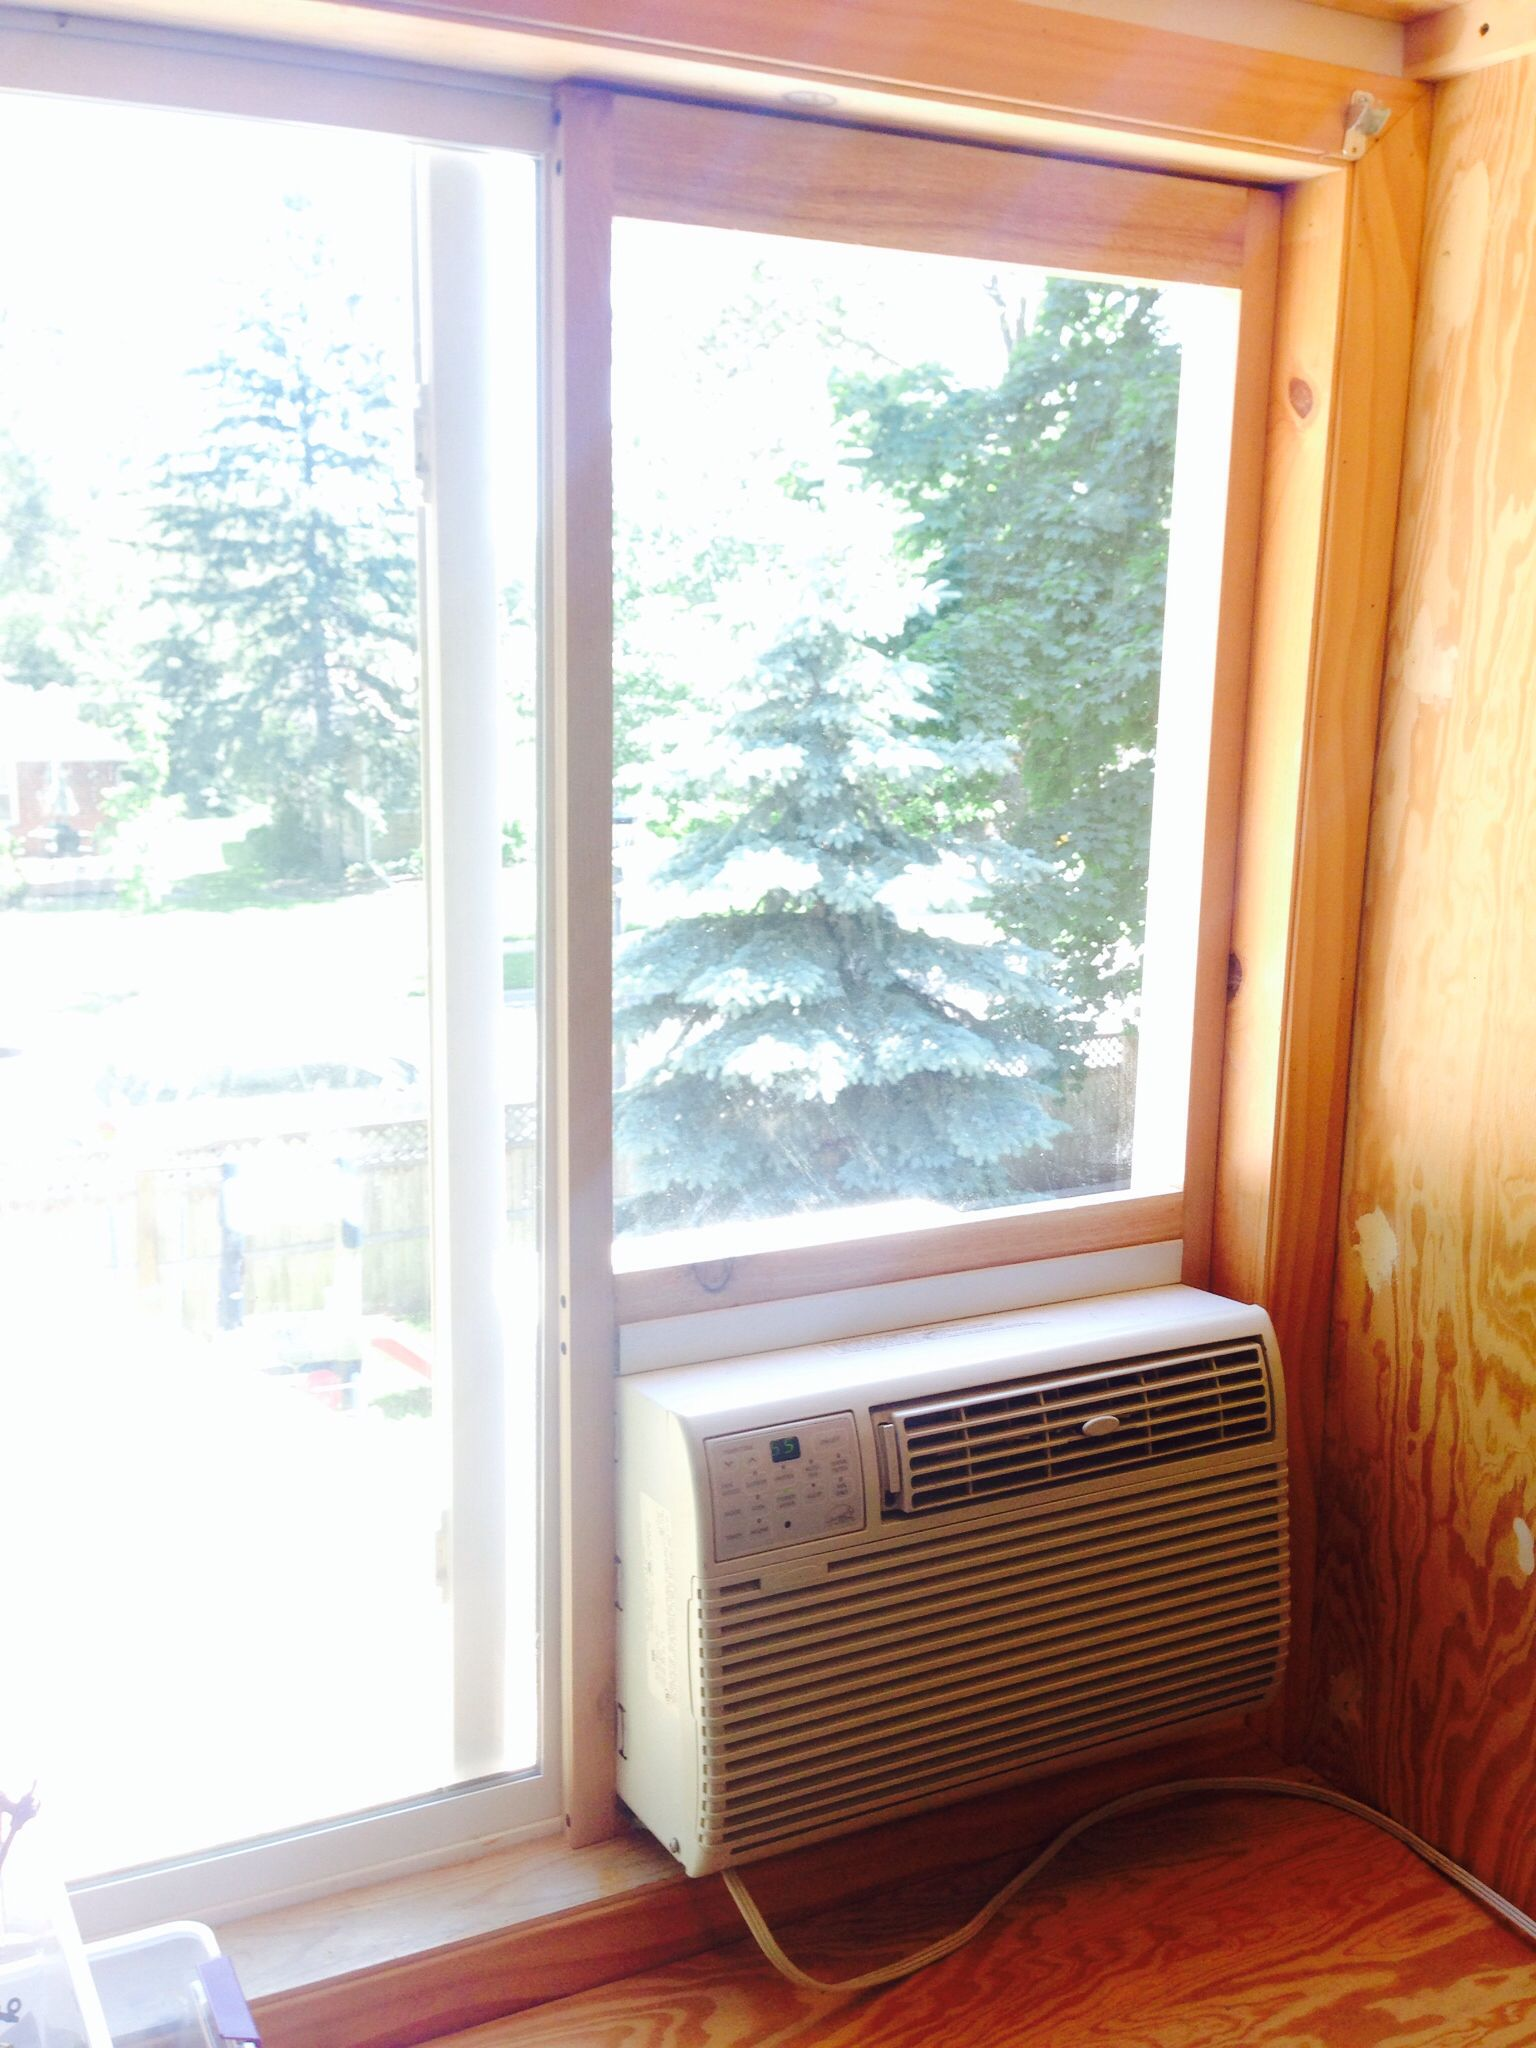 Air Conditioner Mount For Sliding Window Home Improvement Projects Air Conditioner Installation Sliding Windows